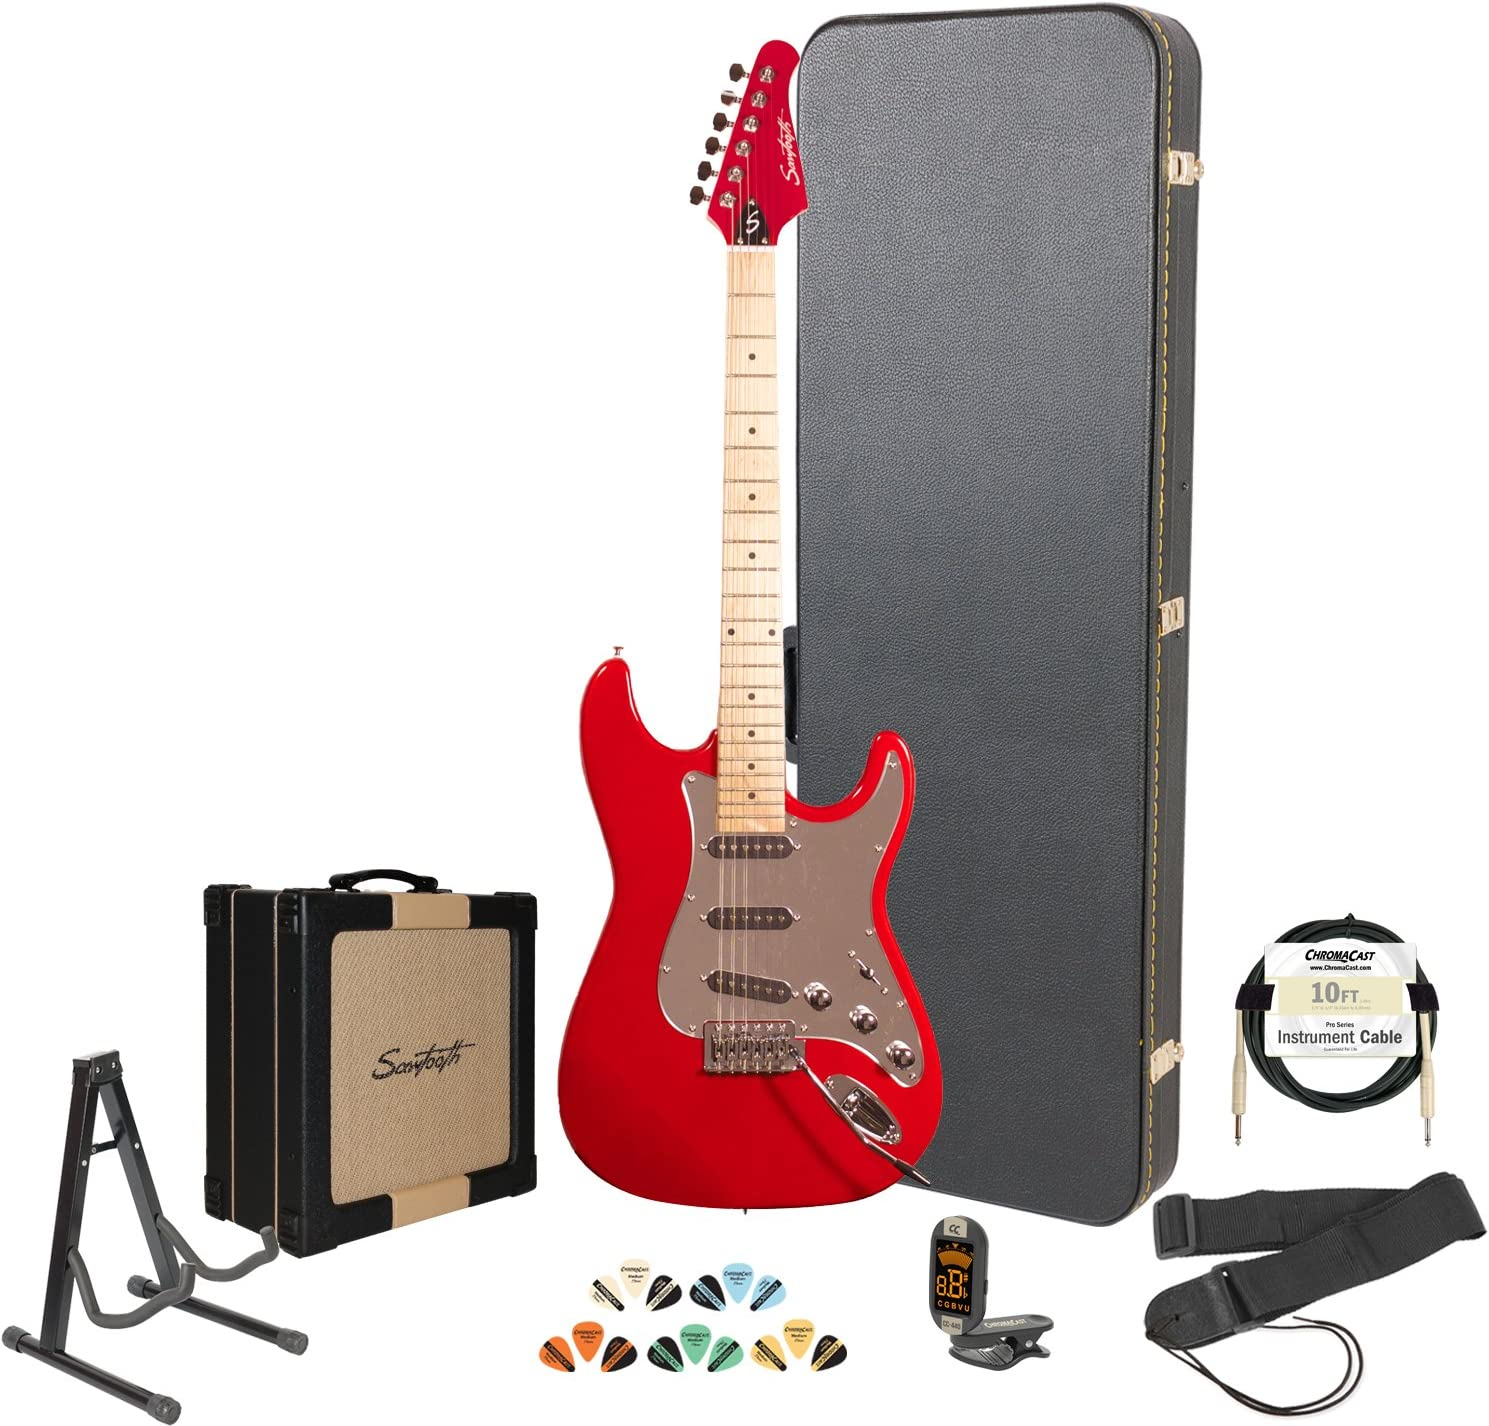 Sawtooth ST Style Electric Guitar with ChromaCast HardCase & Accessories, Candy Apple Red with Chrome Pickguard